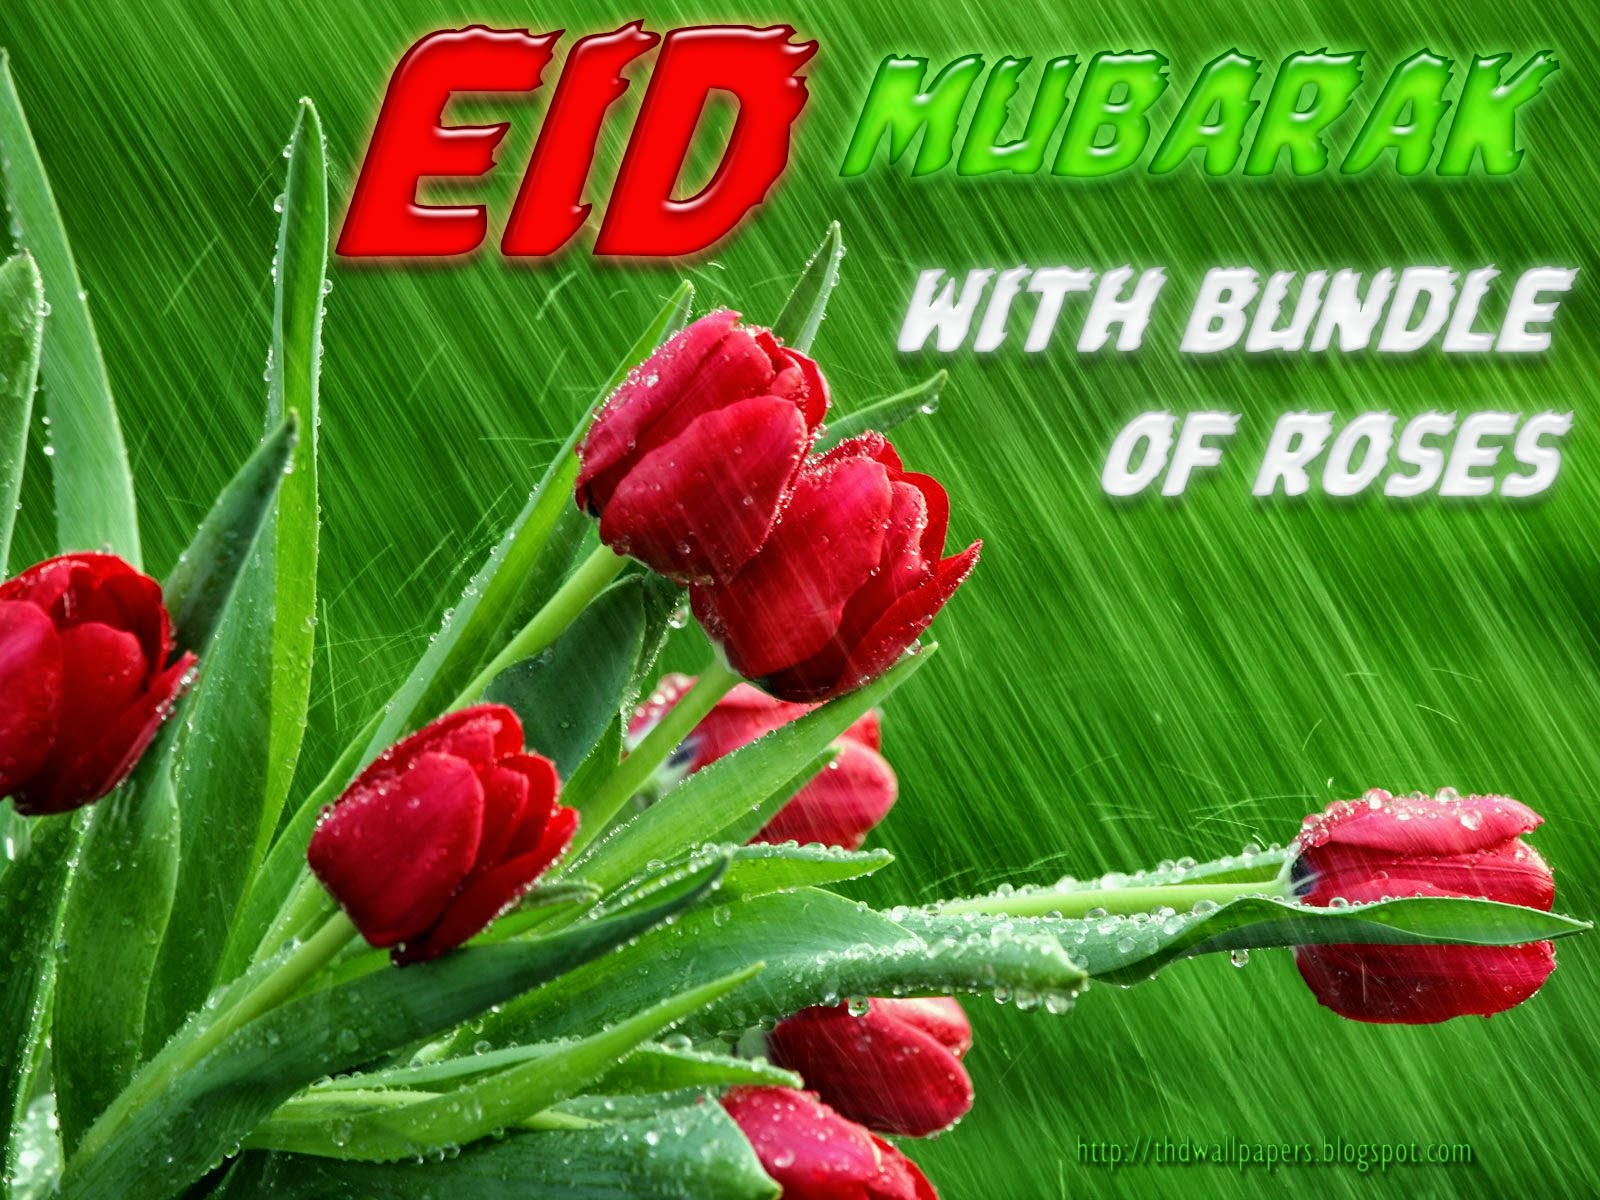 Eid ul adha mubarak greetings cards hd wallpapers free downloads eid ul adha mubarak greetings cards hd wallpapers for free download kristyandbryce Image collections